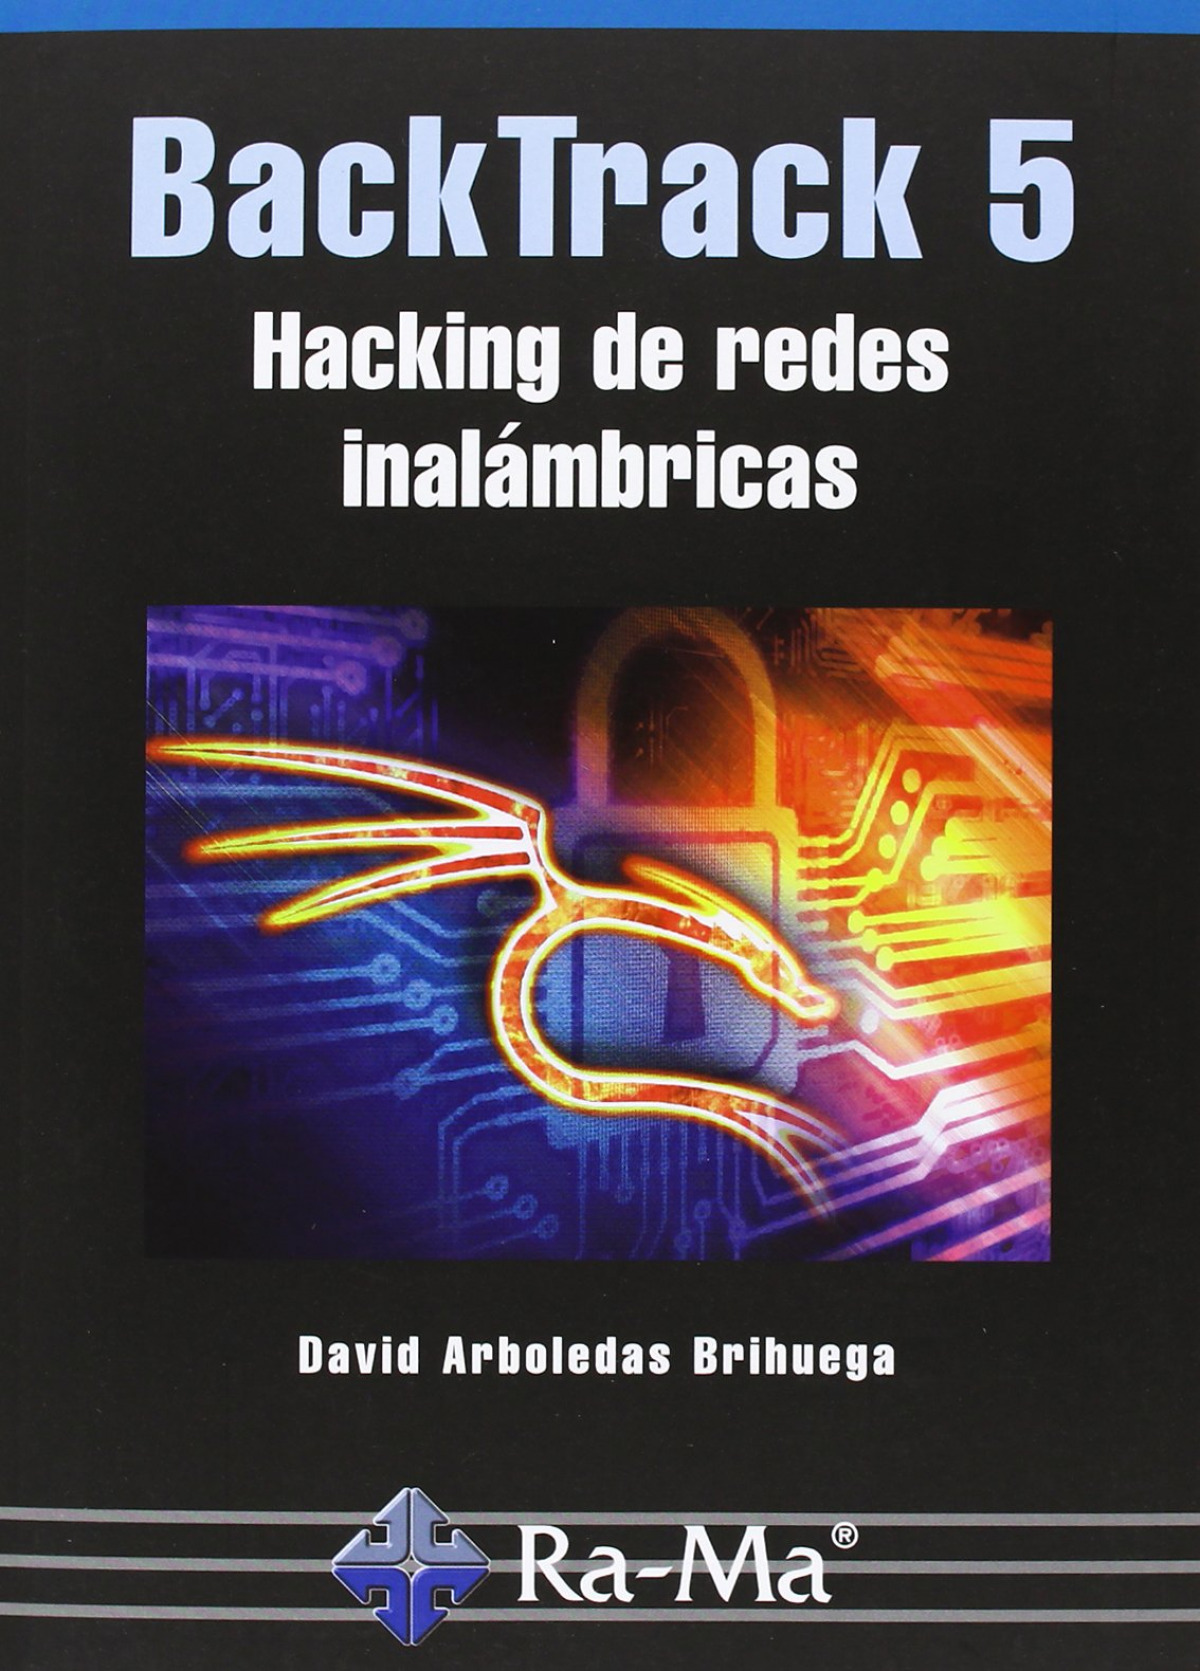 BACKTRACK 5: HACKING DE REDES INALAMBRICAS 9788499642321